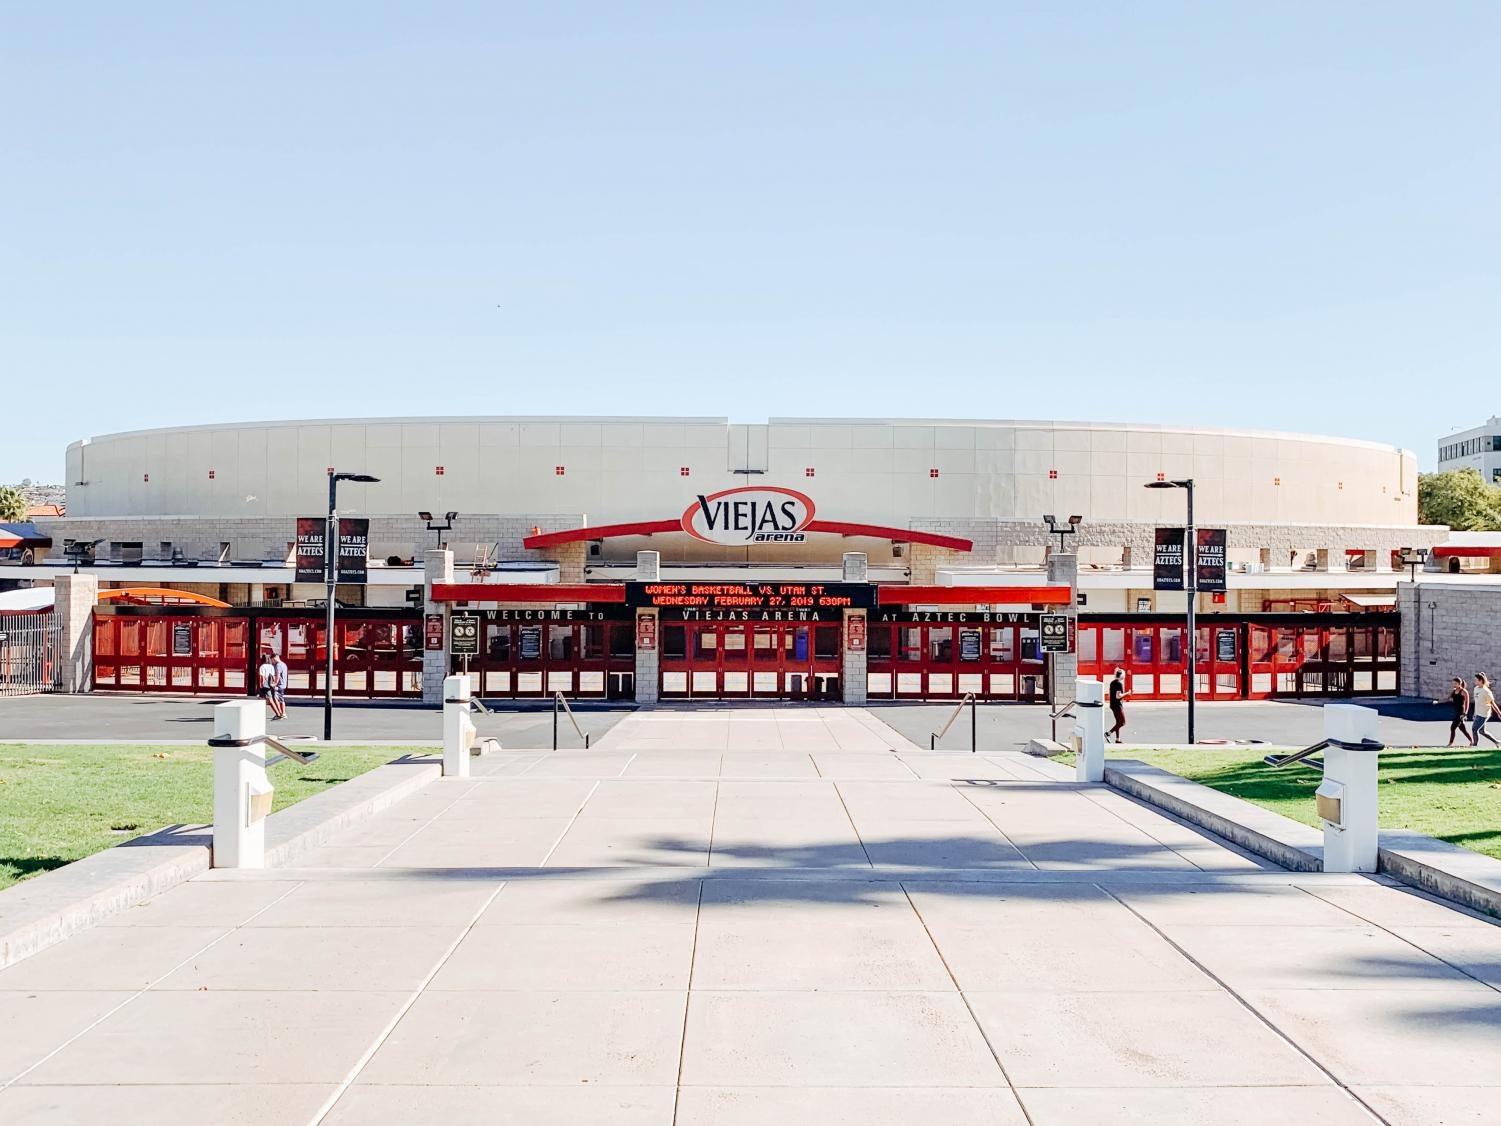 Upcoming concerts at Viejas Arena include KISS and Bob Seger.